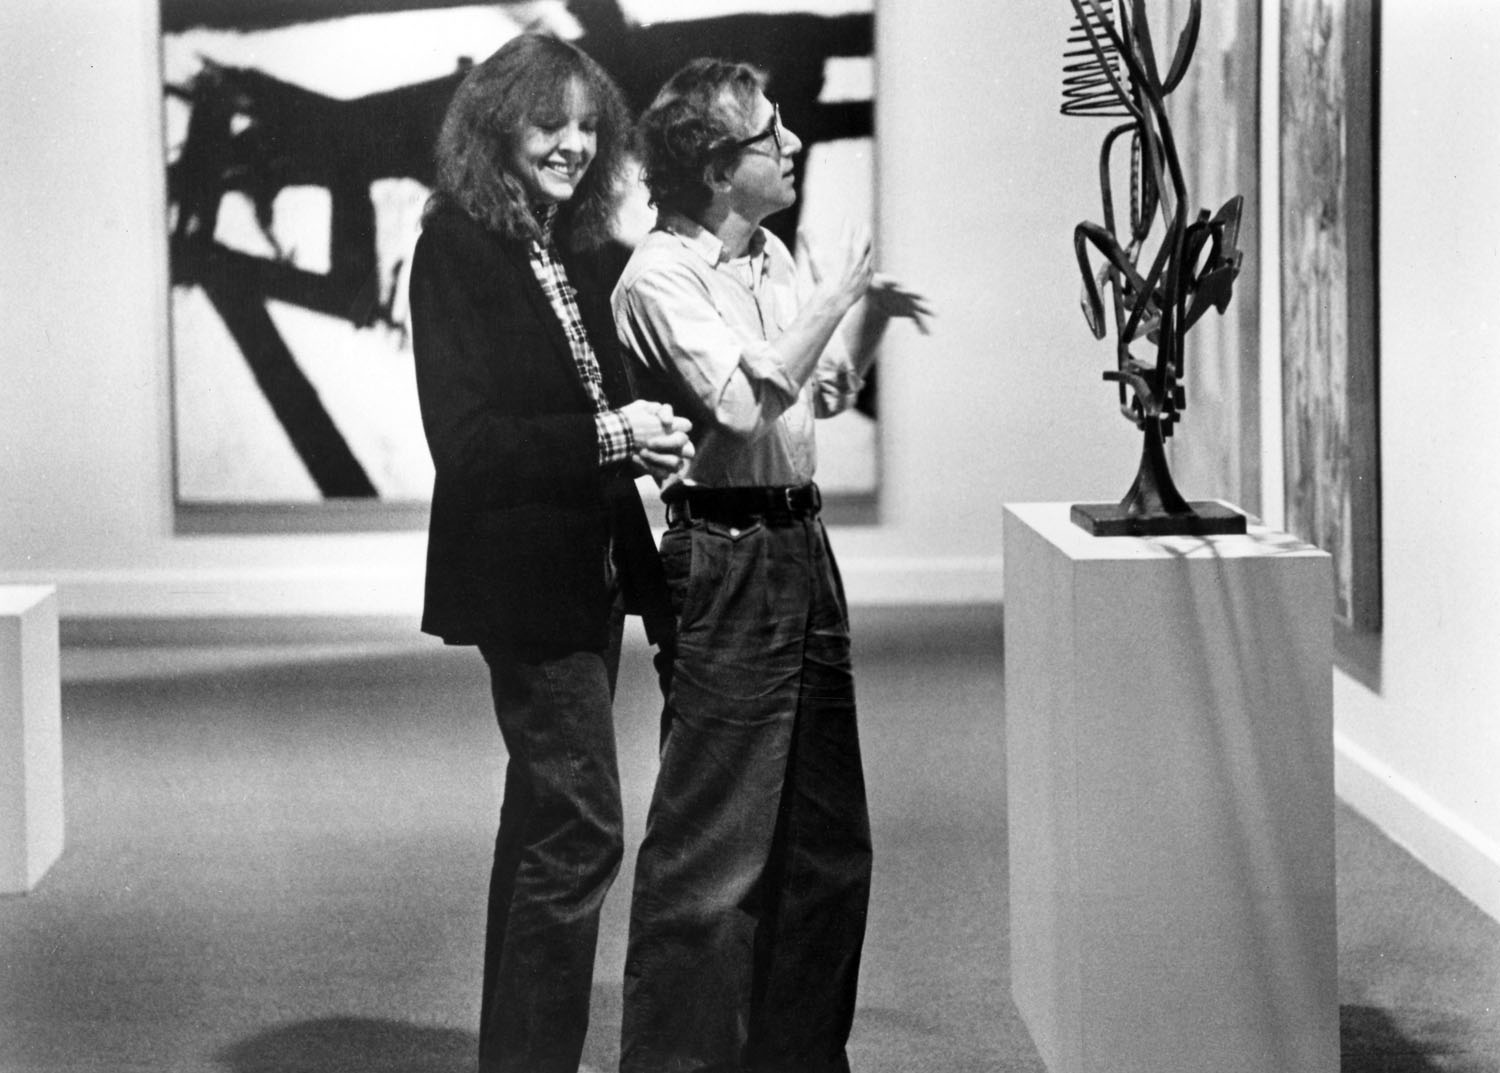 Love Those Classic Movies!!!: Manhattan (1979) Woody Allen ... Diane Keaton Woody Allen Romance